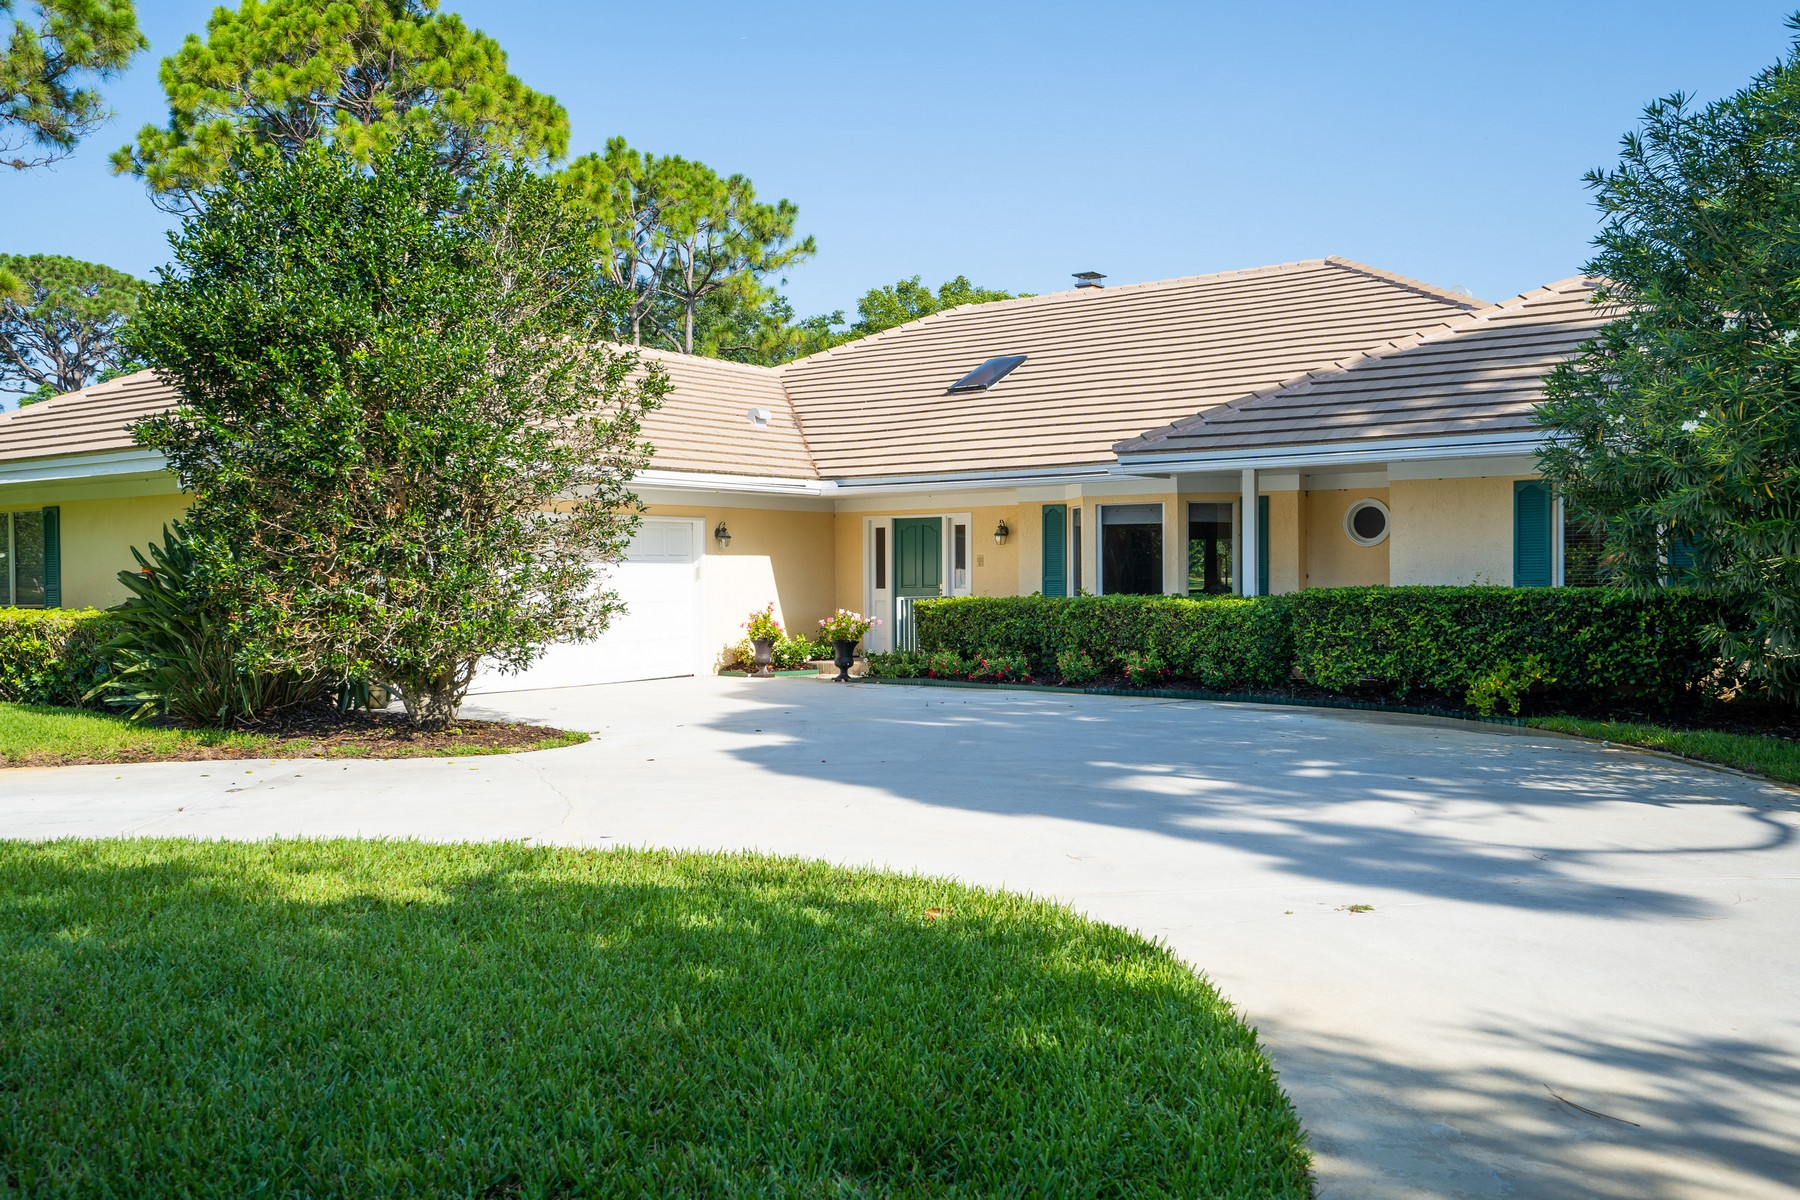 Four Bedroom Home on the Golf Course 5825 Glen Eagle Lane Vero Beach, Florida 32967 Stati Uniti